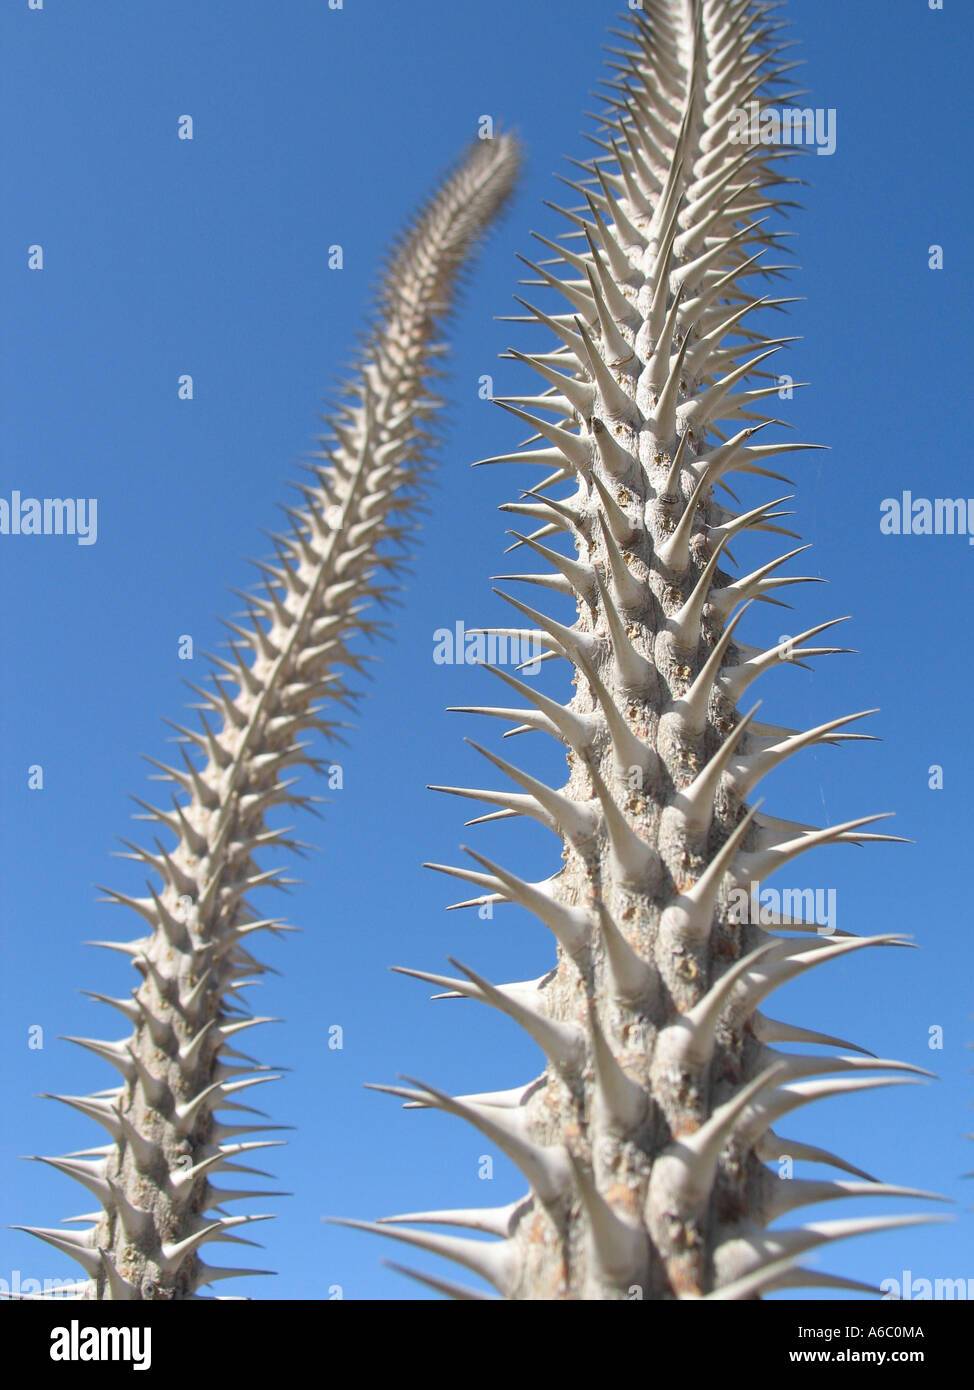 Thorny Cactus Rise Against the Blue Sky - Stock Image